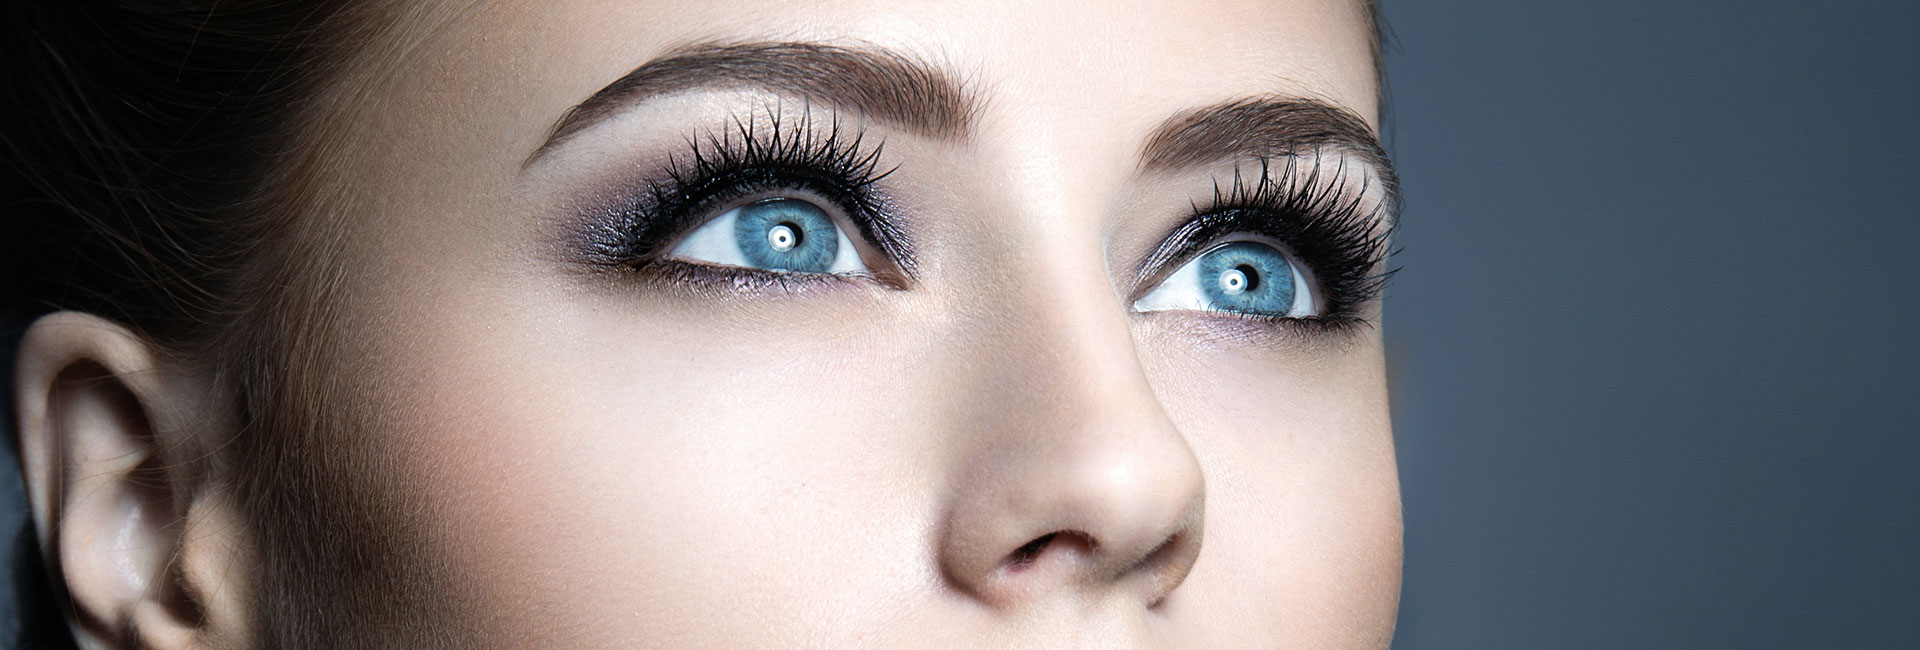 12 Tips For Best Eyelash Extension